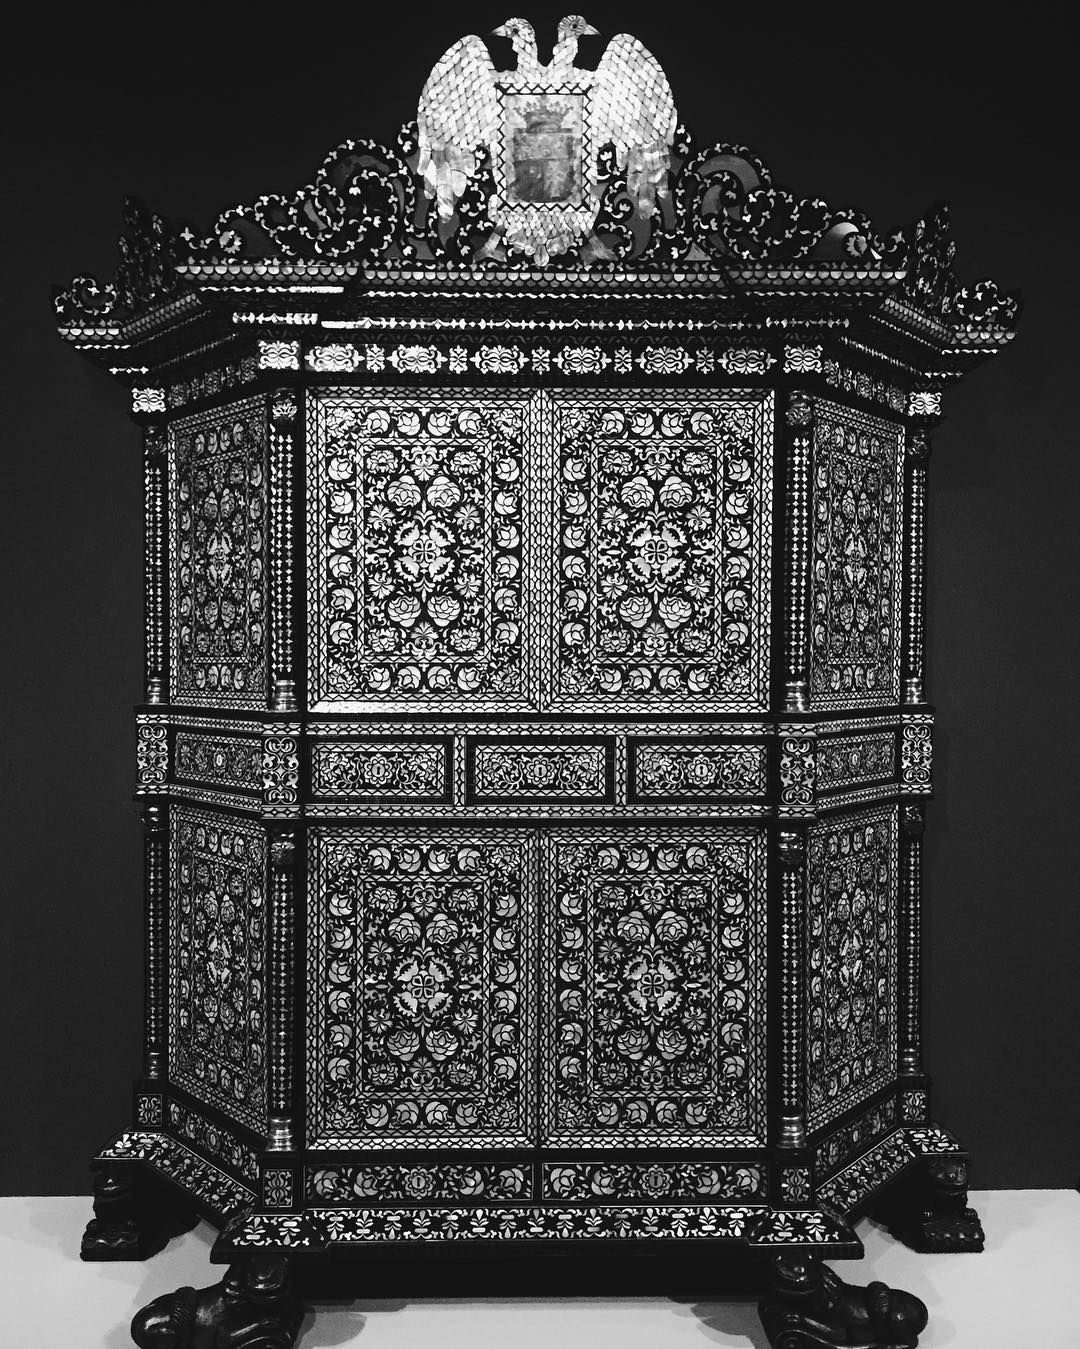 Seriously considered my first museum heist when I saw this wardrobe. Especially if it leads to Narnia.